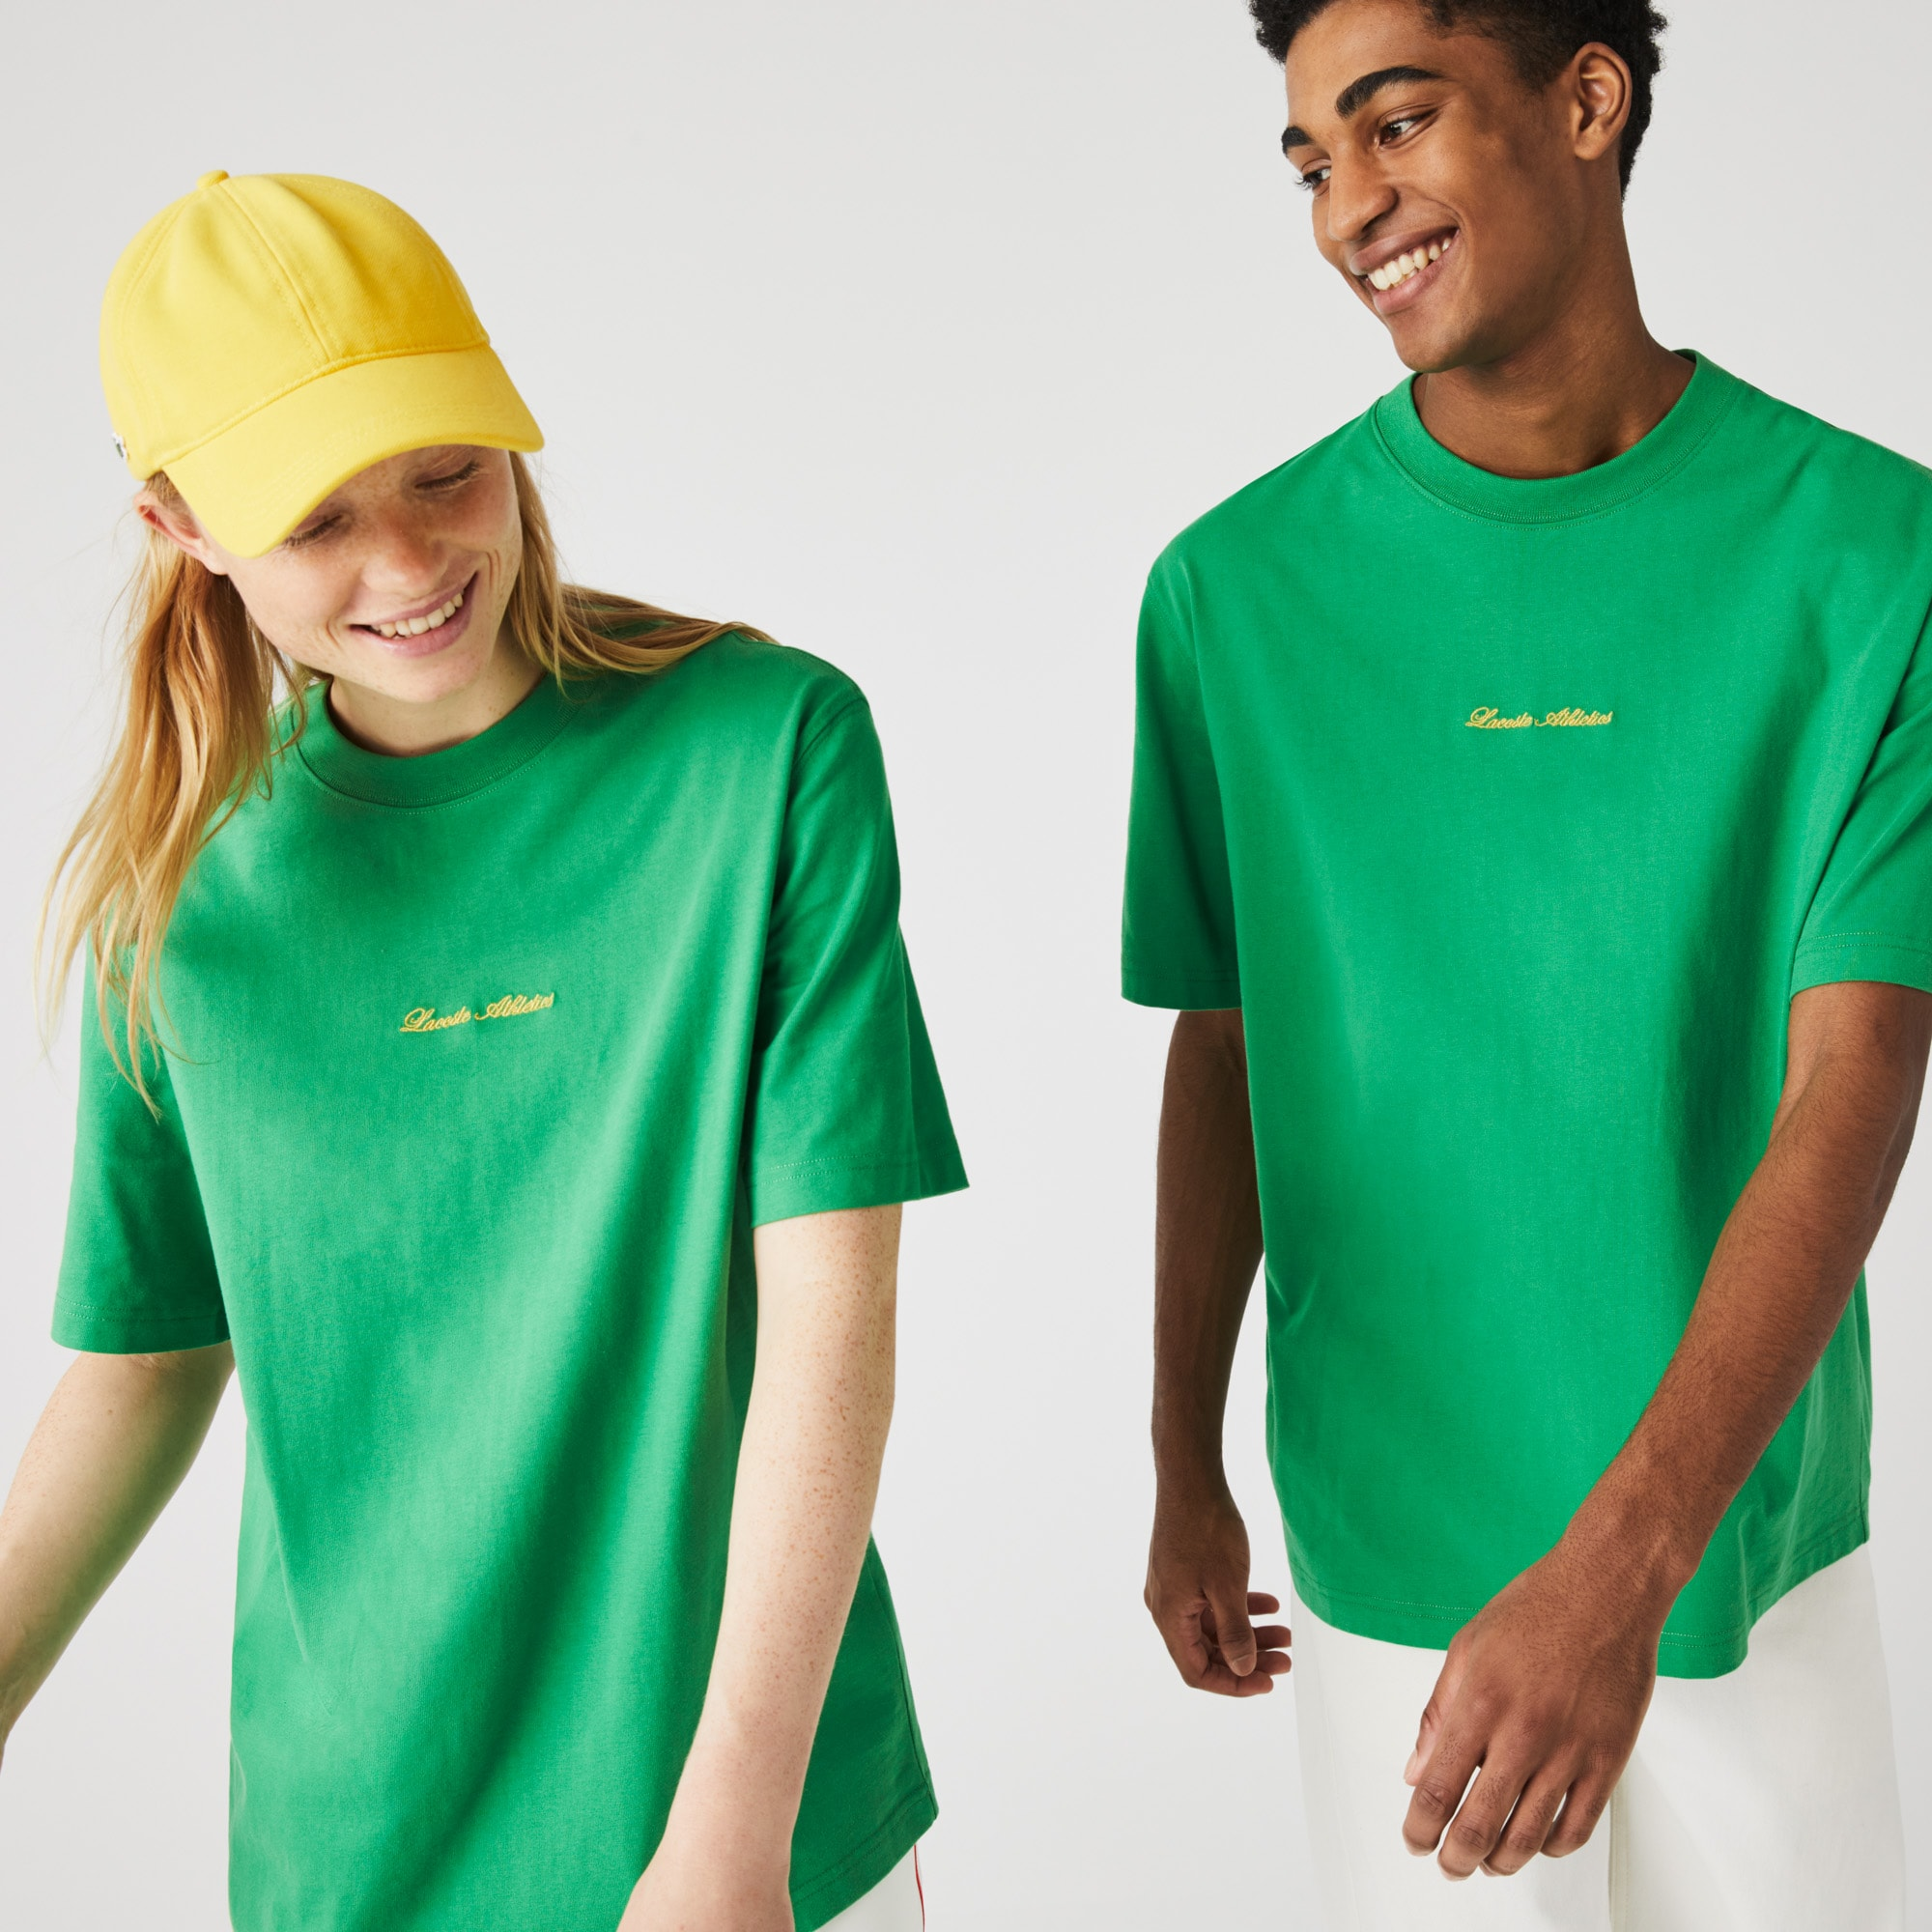 Lacoste Unisex LIVE Relaxed Fit Embroidered Cotton T-shirt